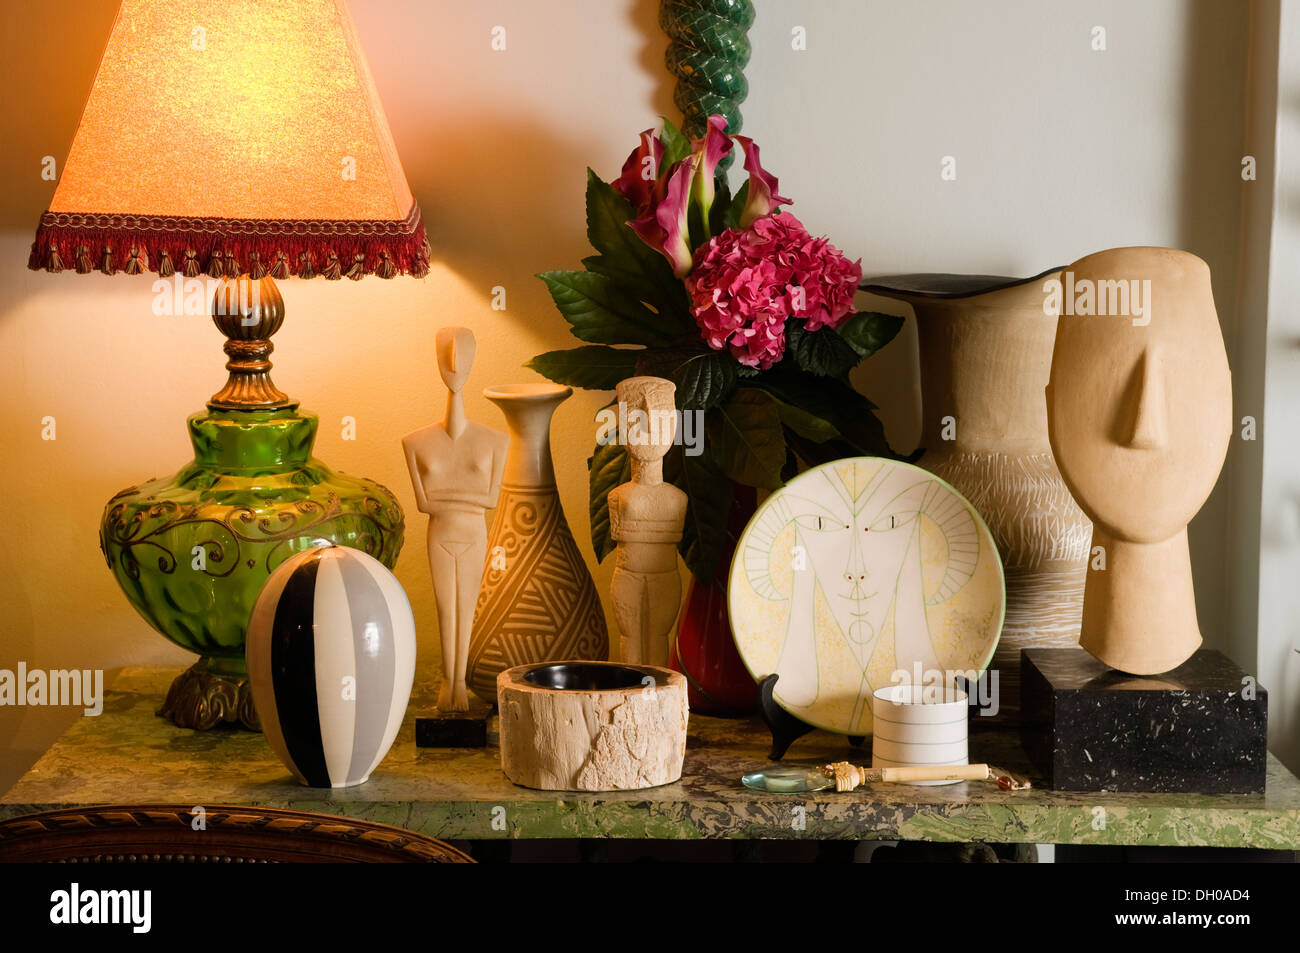 A collection of various objects and artefact's - Stock Image